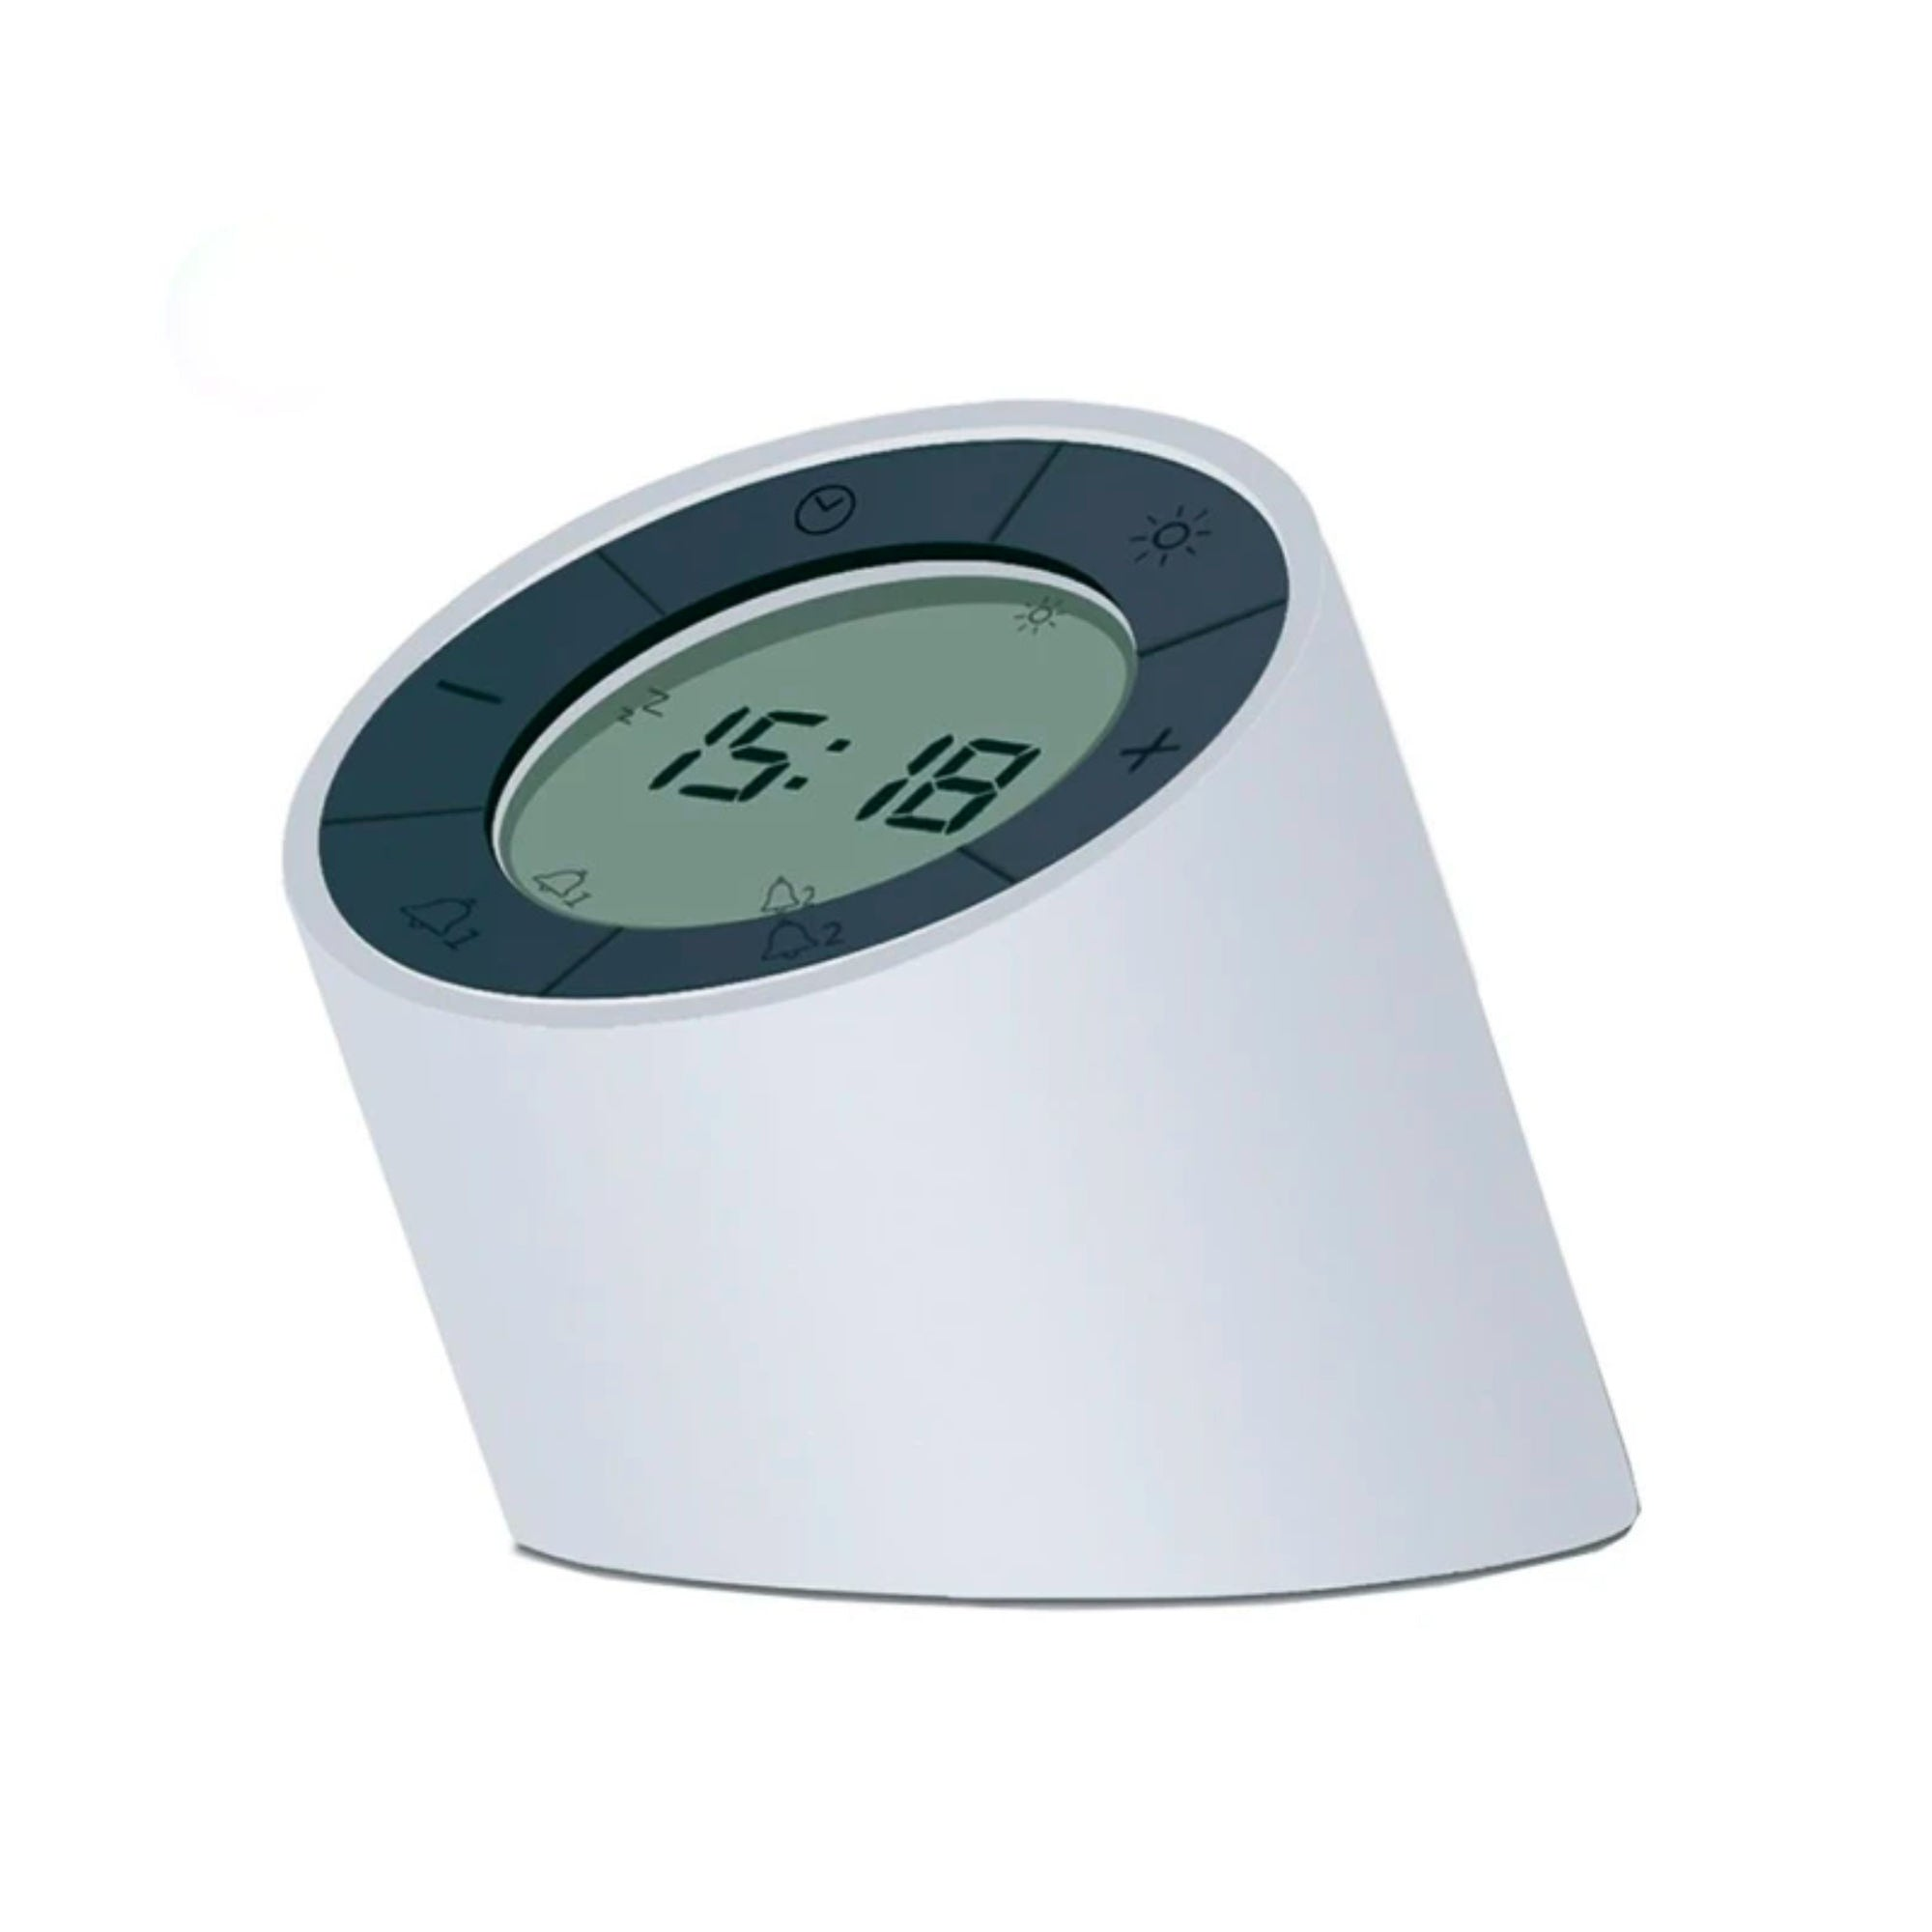 Gingko Edge alarm clock + night light, white